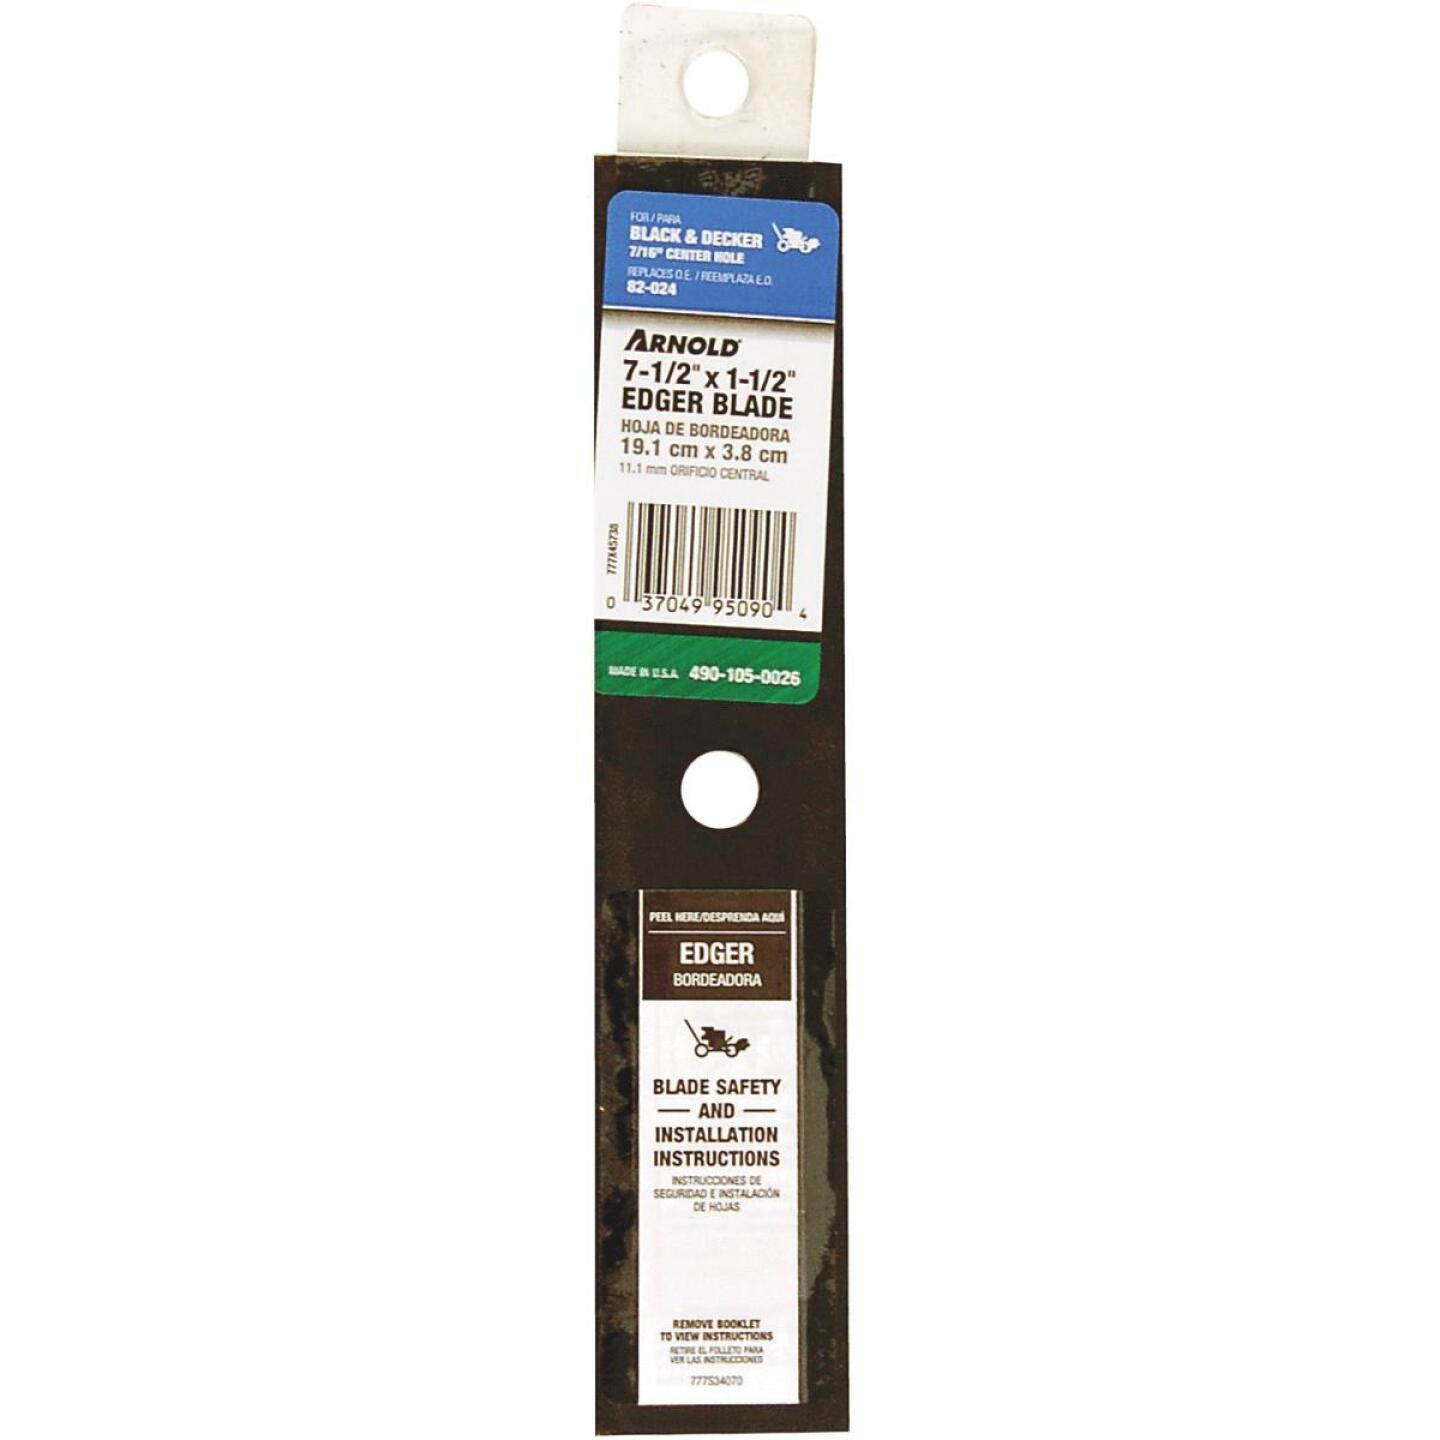 Arnold 7-1/2 In. Replacement Edger Blade Image 1